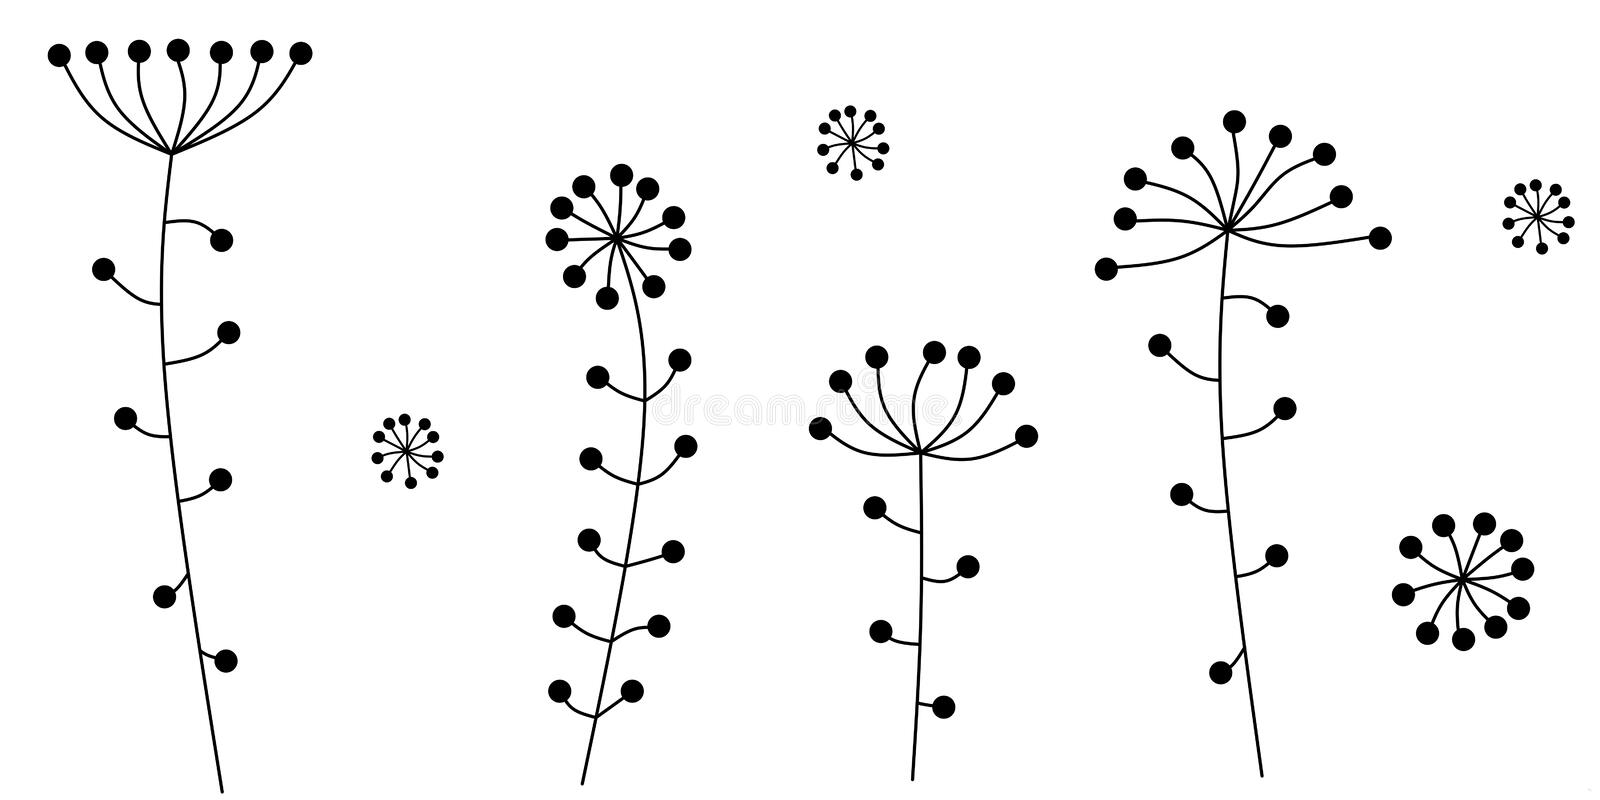 Fleurs abstraites Illustration de vecteur illustration stock